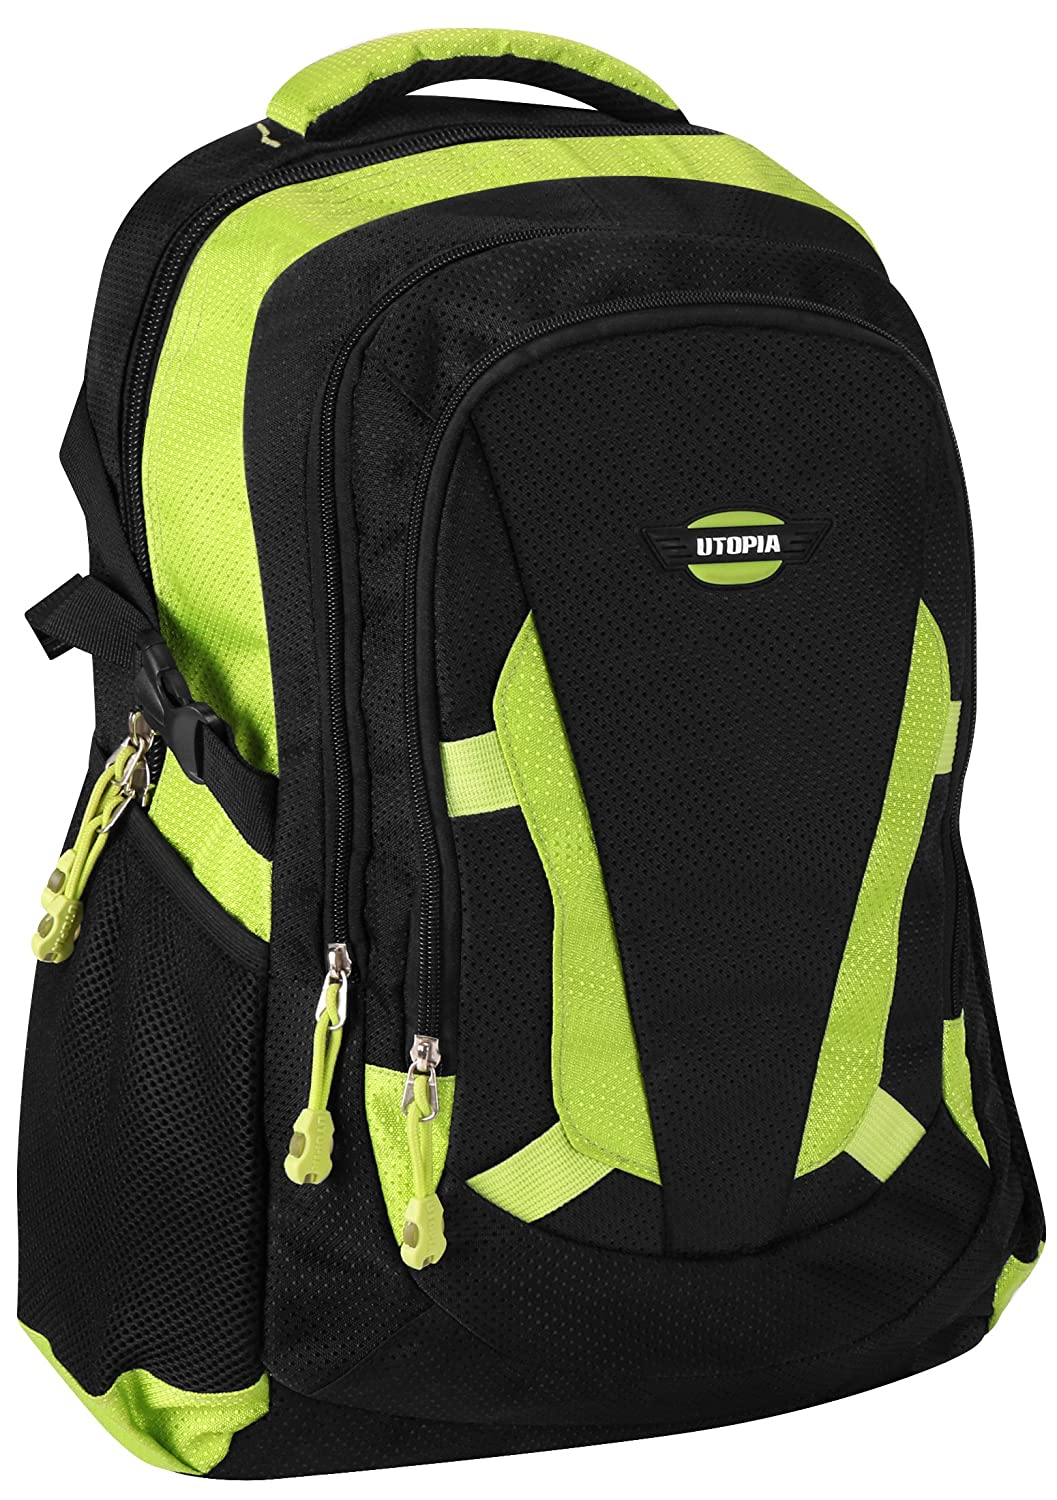 Laptop Backpack for Up to 15.6 Inch Laptops Lightweight Padded Sleeve Design by Utopia Home Green